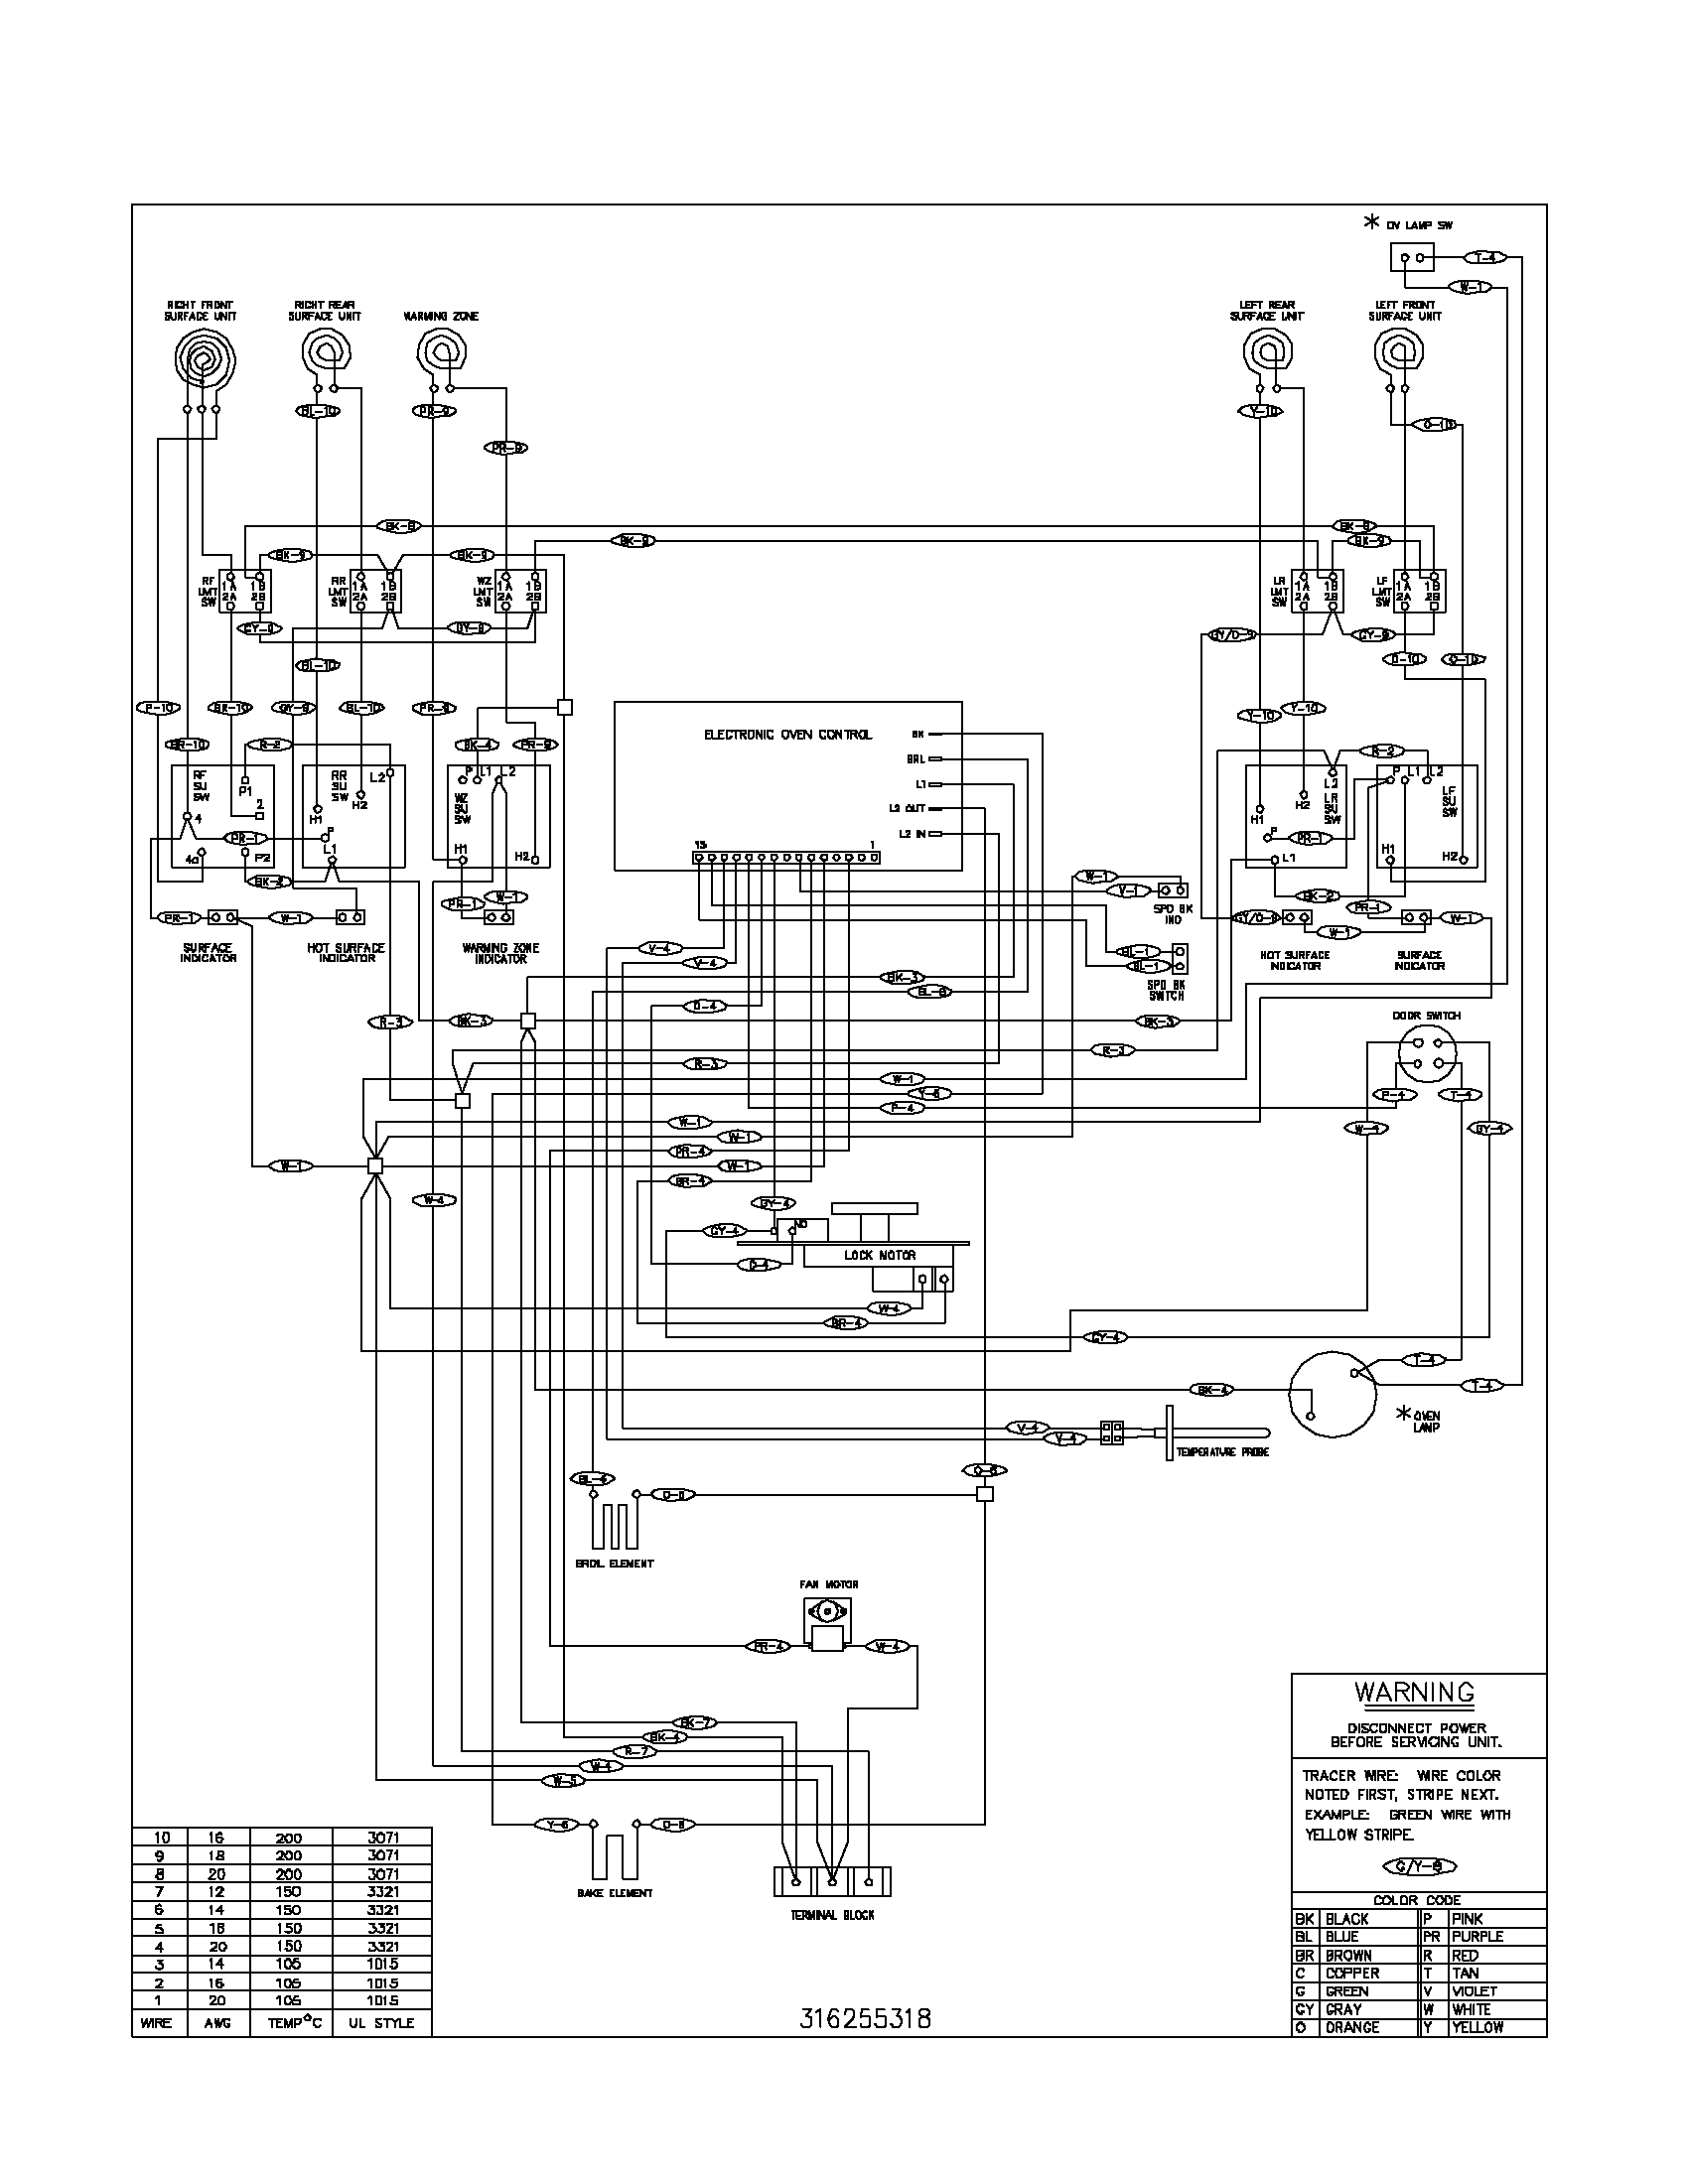 Oven Wiring Diagram For Electrolux Smart Diagrams Wall Frigidaire Glef378cqb Electric Range Timer Stove Clocks Dryer Vacuum Cleaner Parts